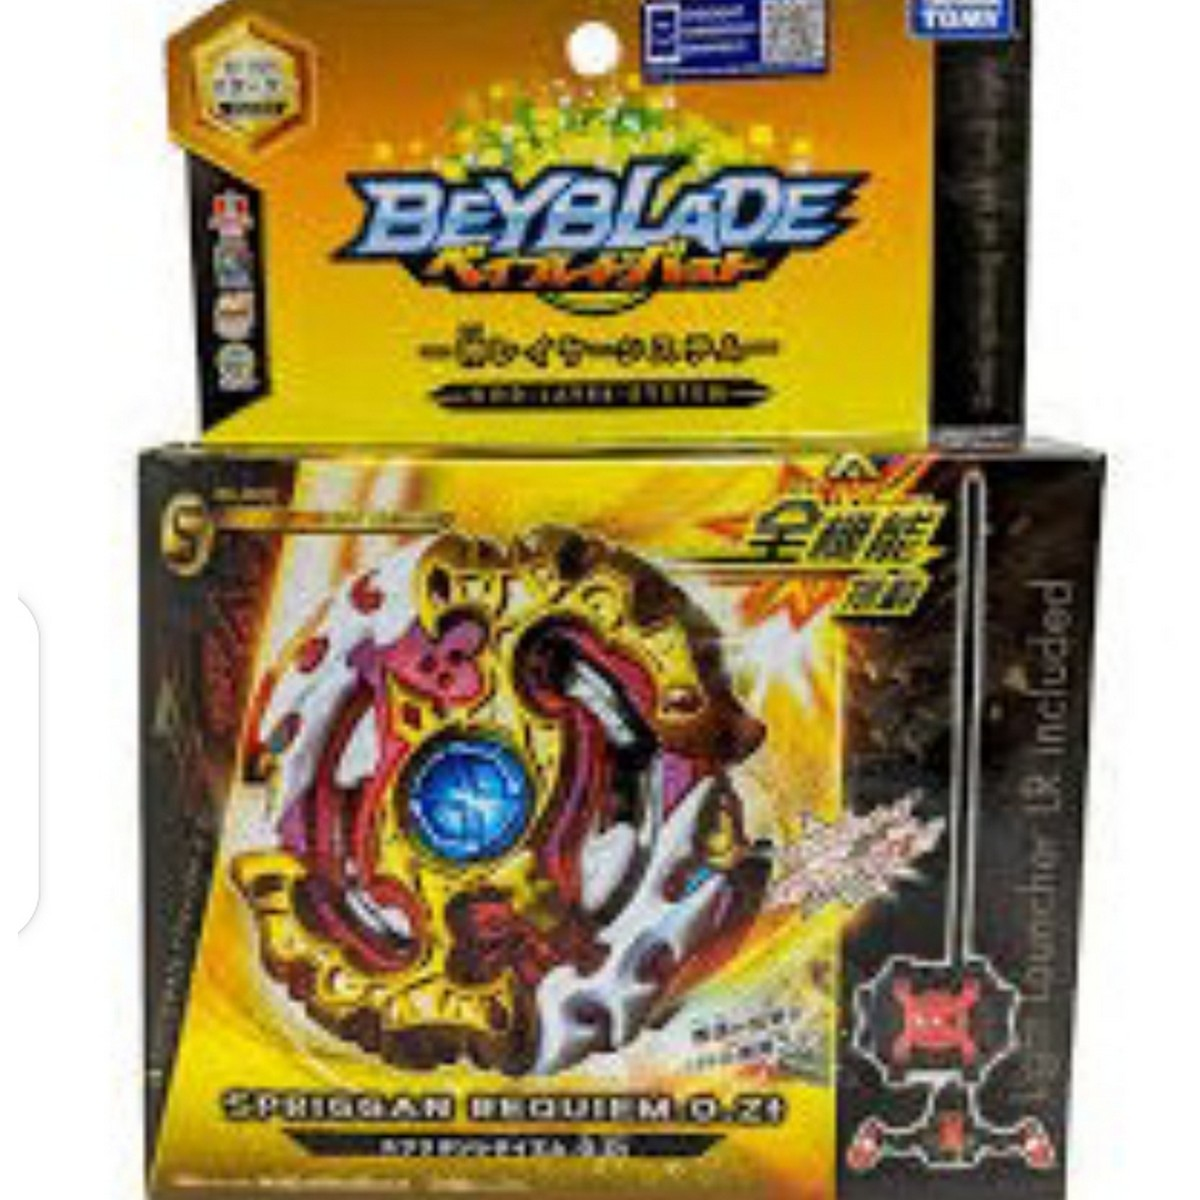 Beyblade Burst (Hand grip shooter,Genuine product)launcher included,Box packed